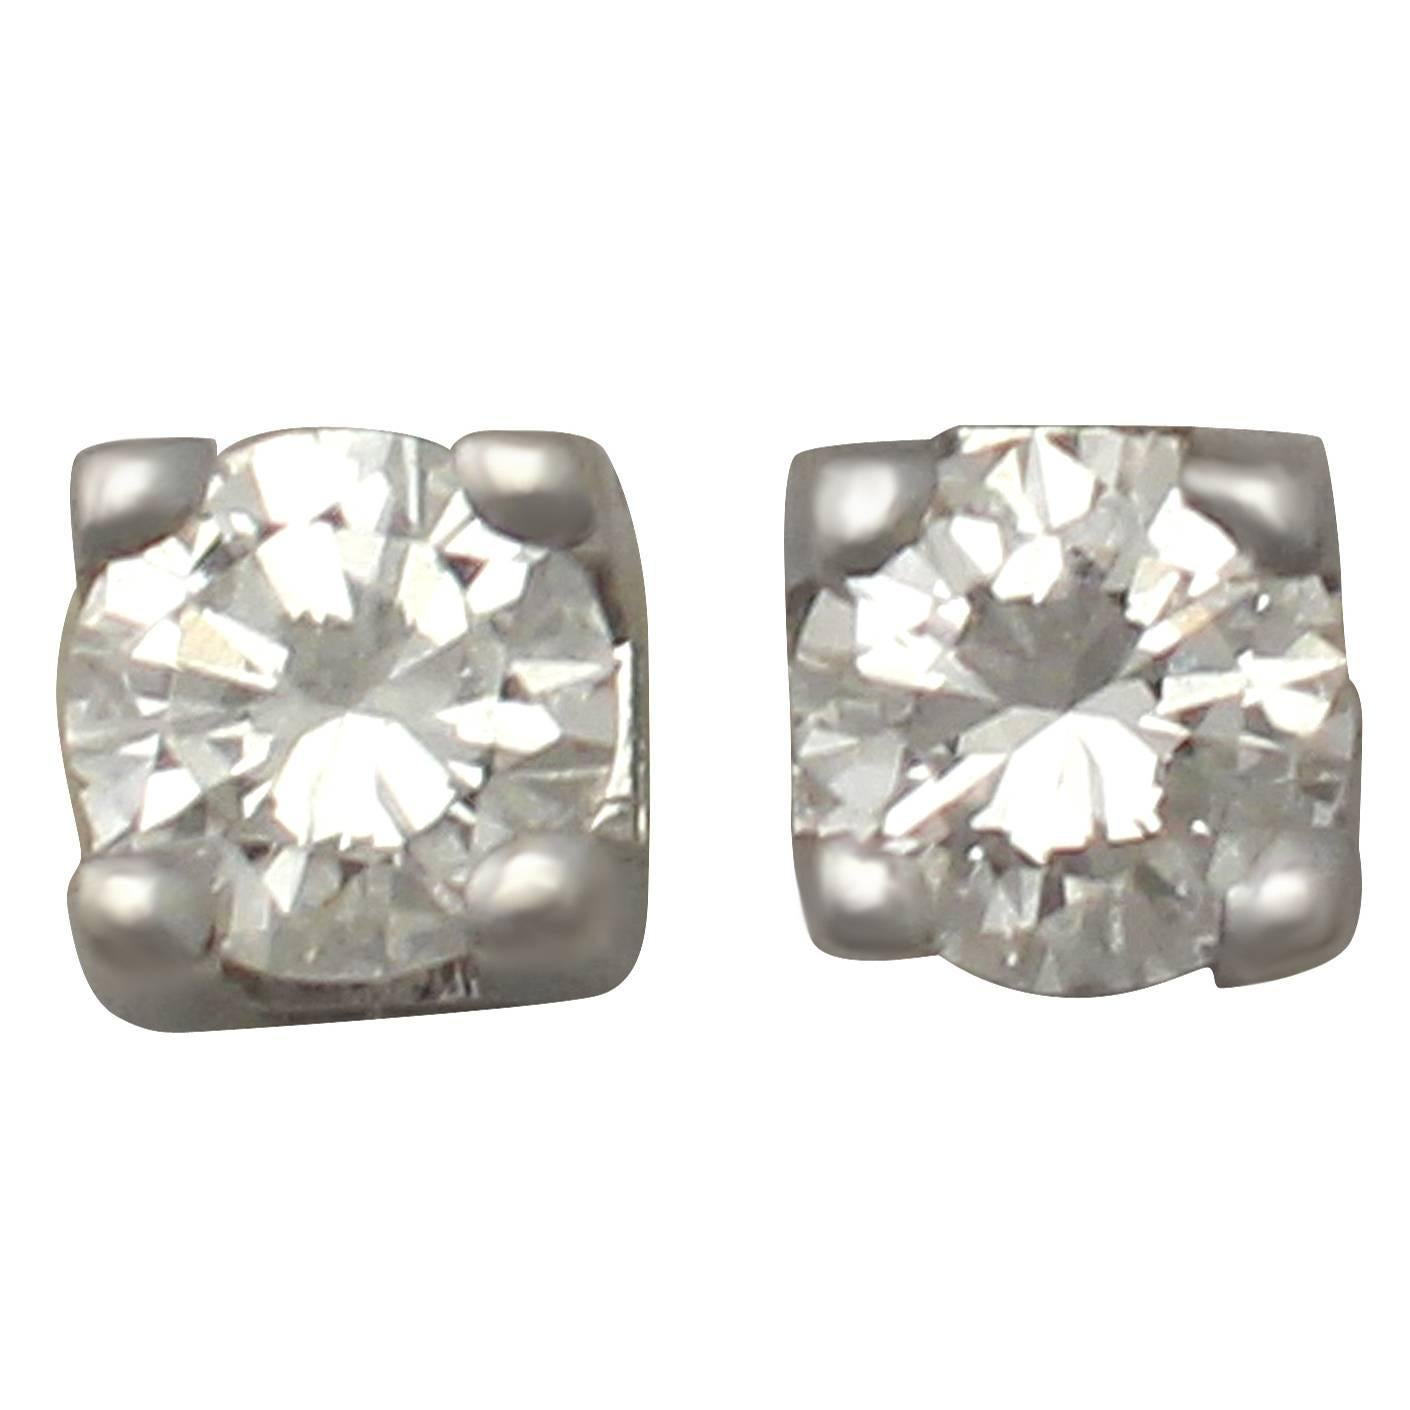 stud total details itm carat rectangular flower shape gold weight earrings about diamond